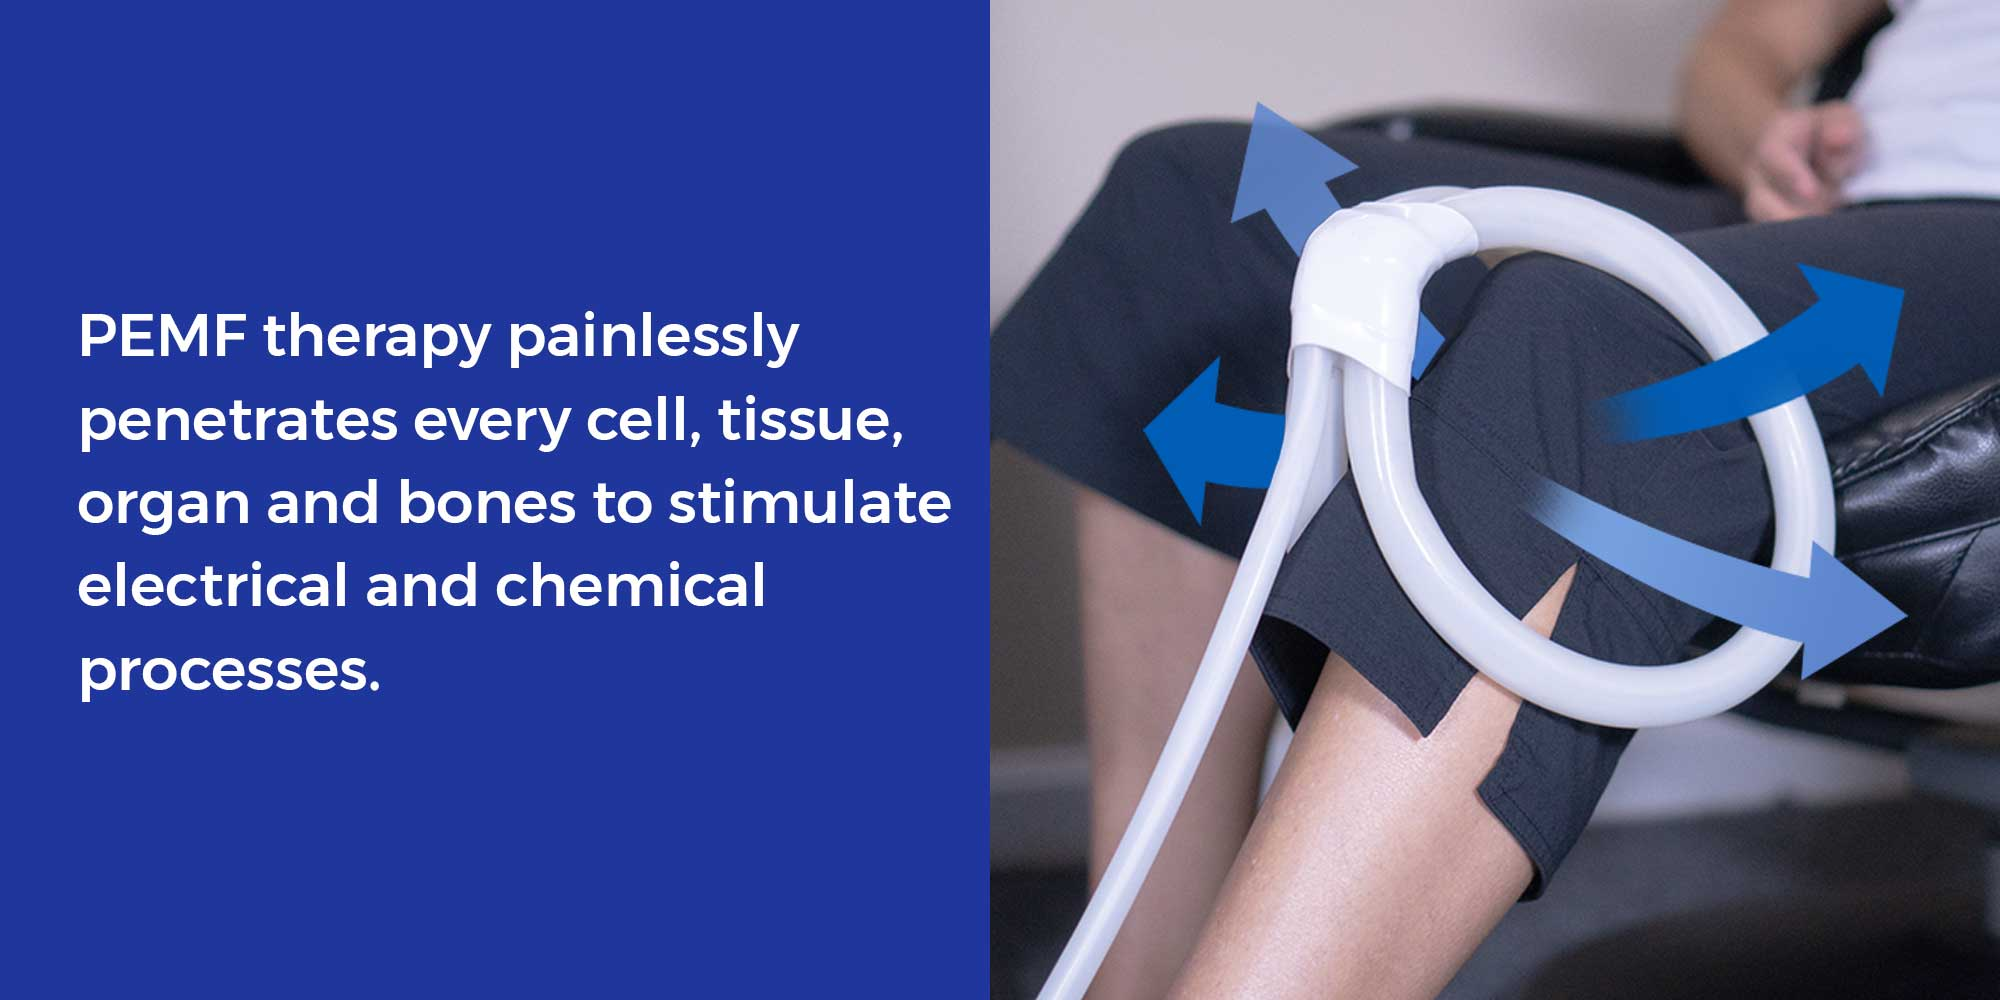 PEMF therapy painlessly penetrates every cell, tissue, organ and bones to stimulate electrical and chemical processes.